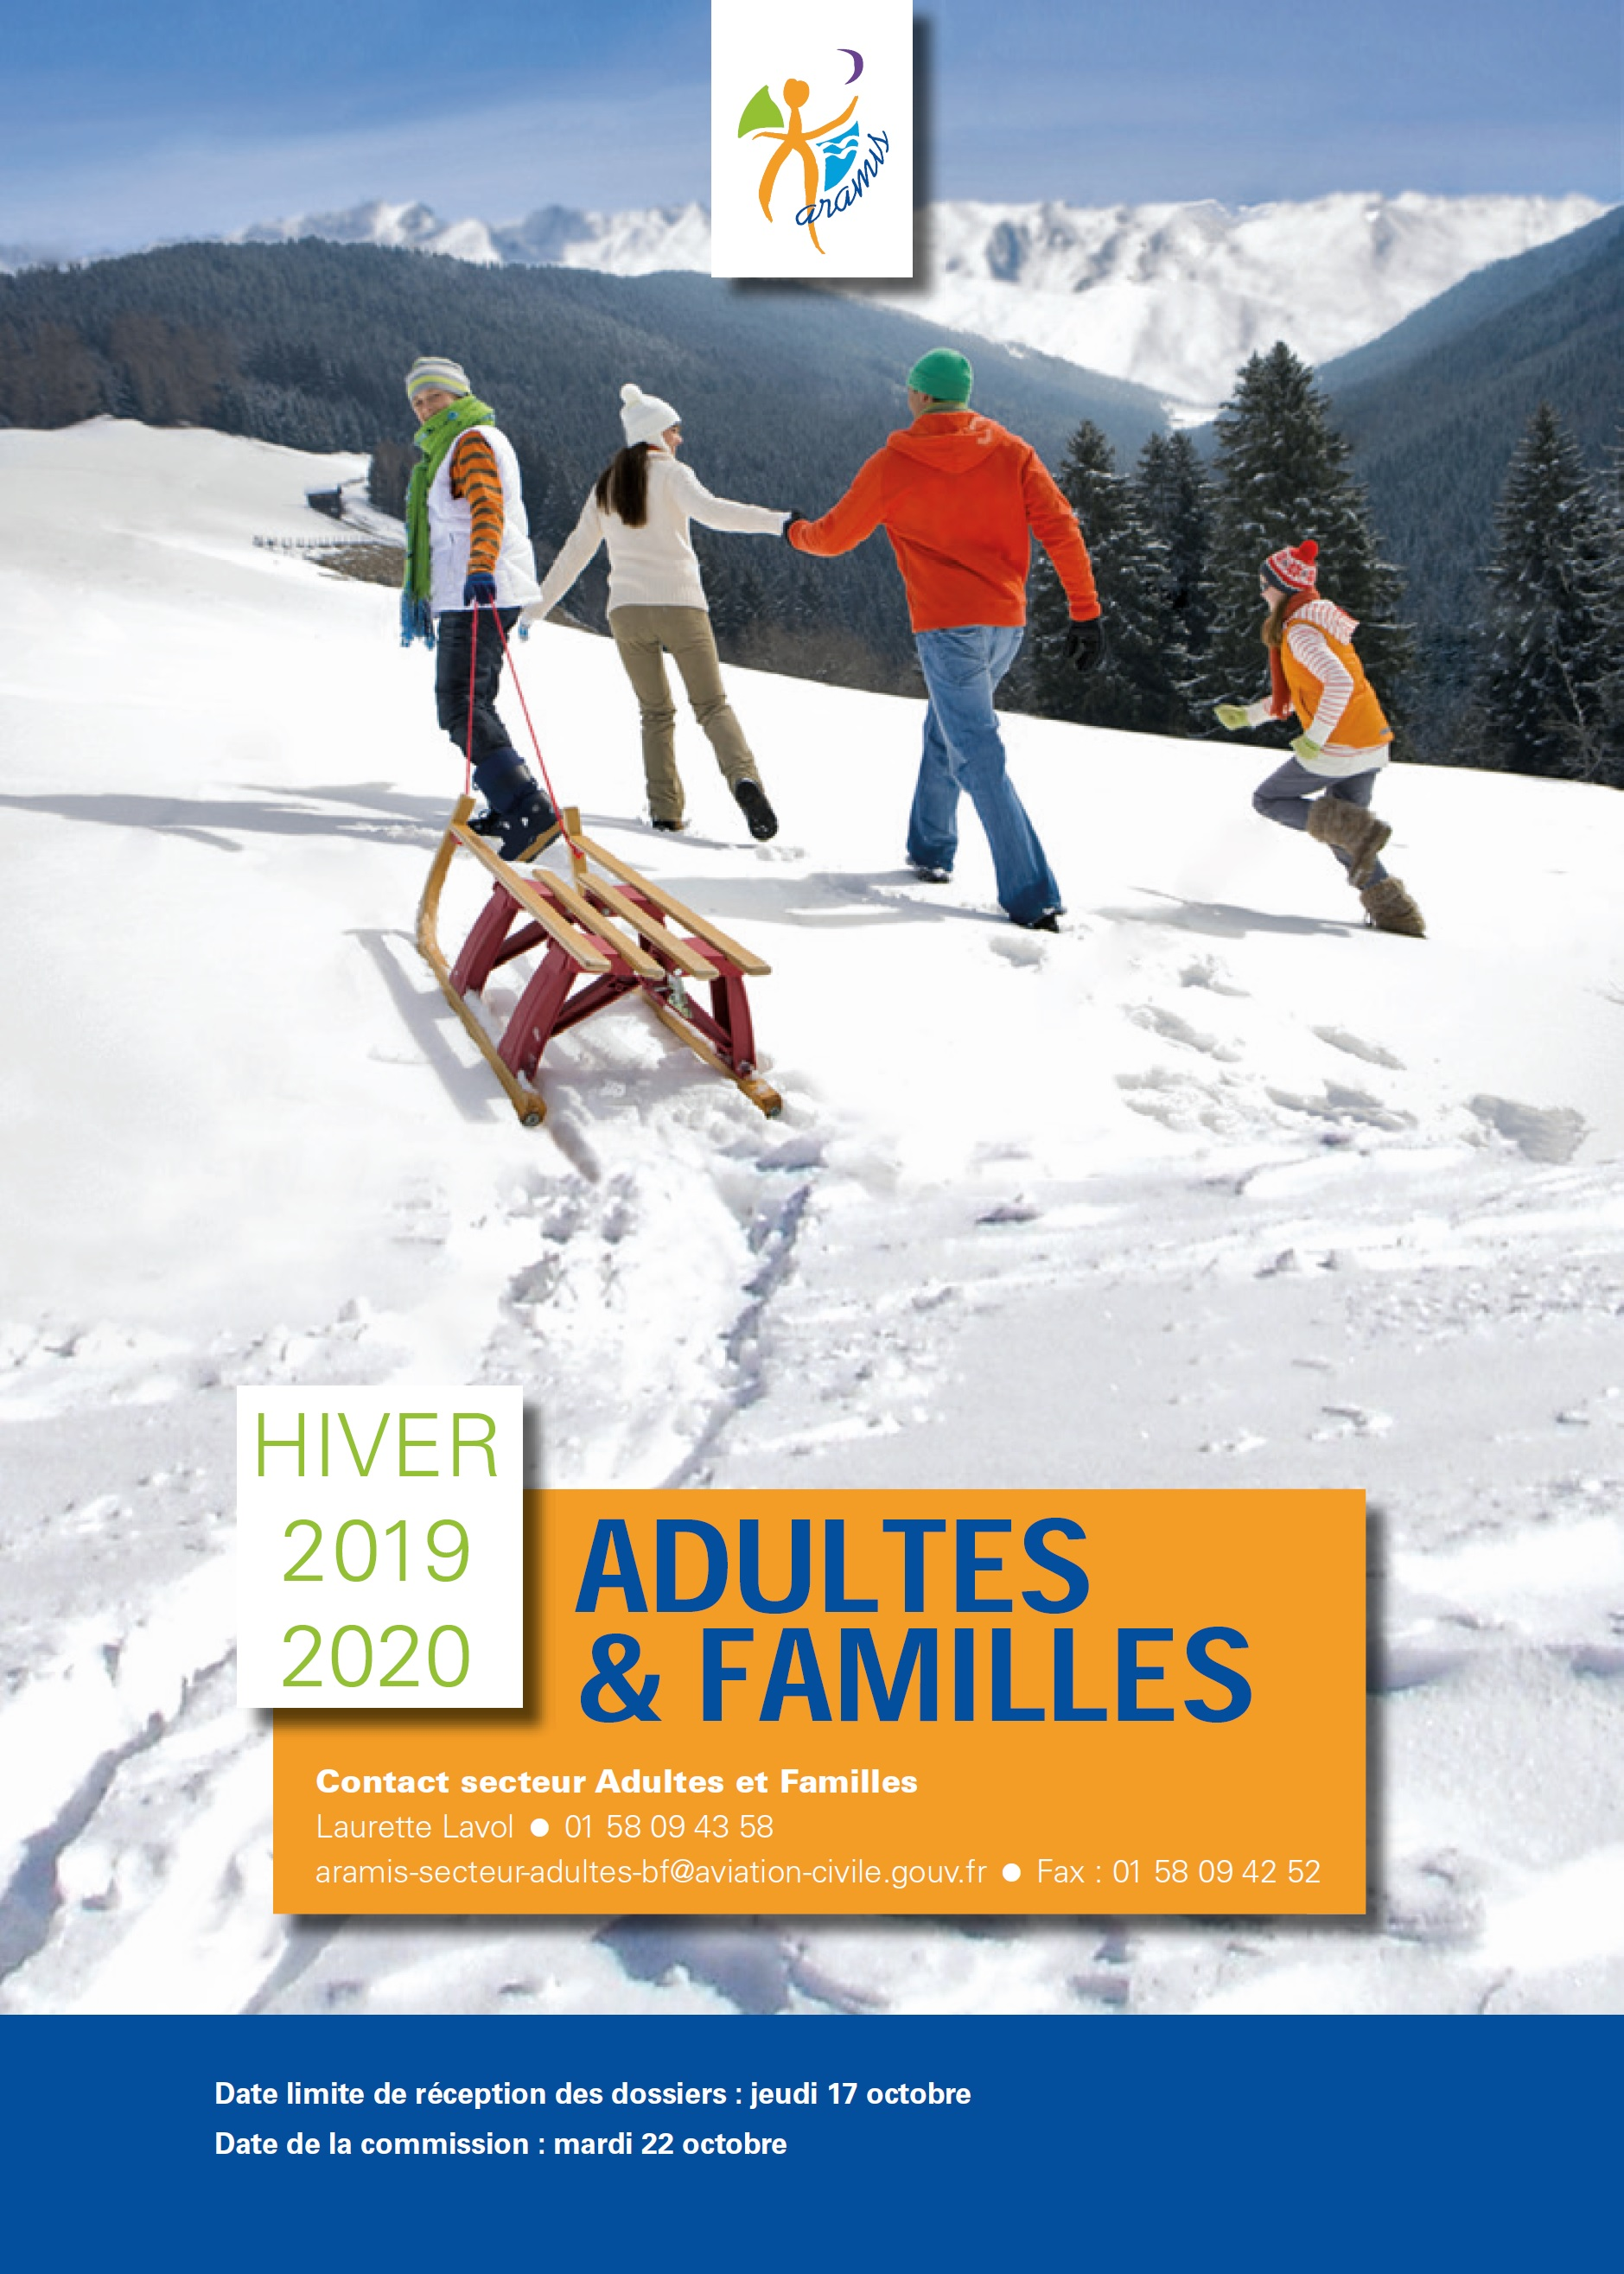 Couv adultes20192020